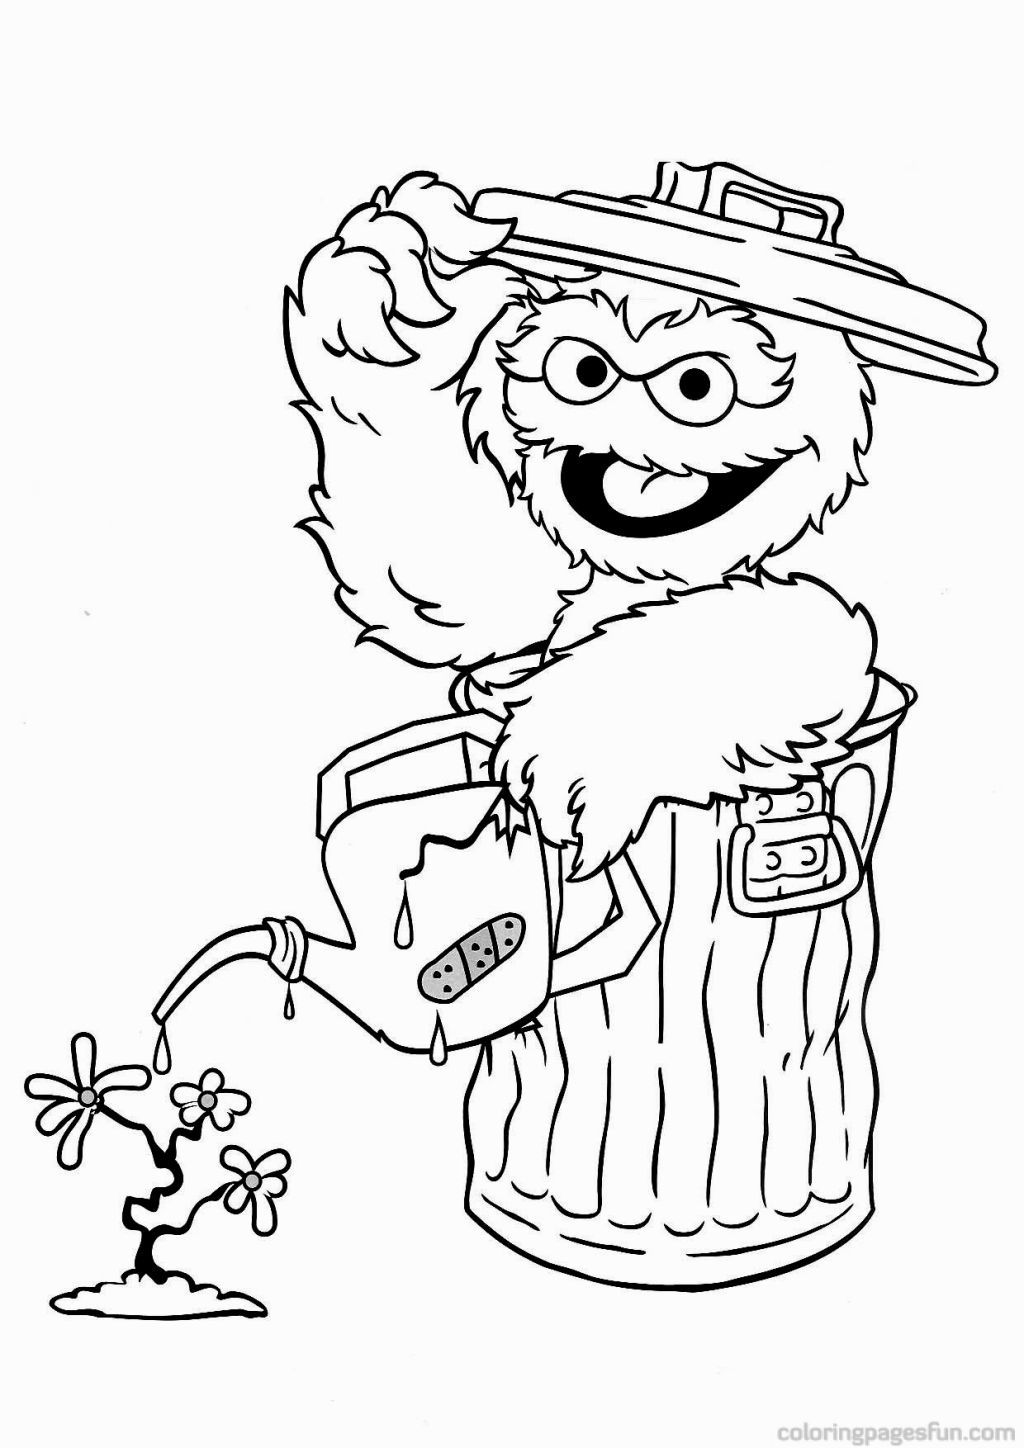 Sesame Street Coloring Pages Coloring Pages Sesame Street